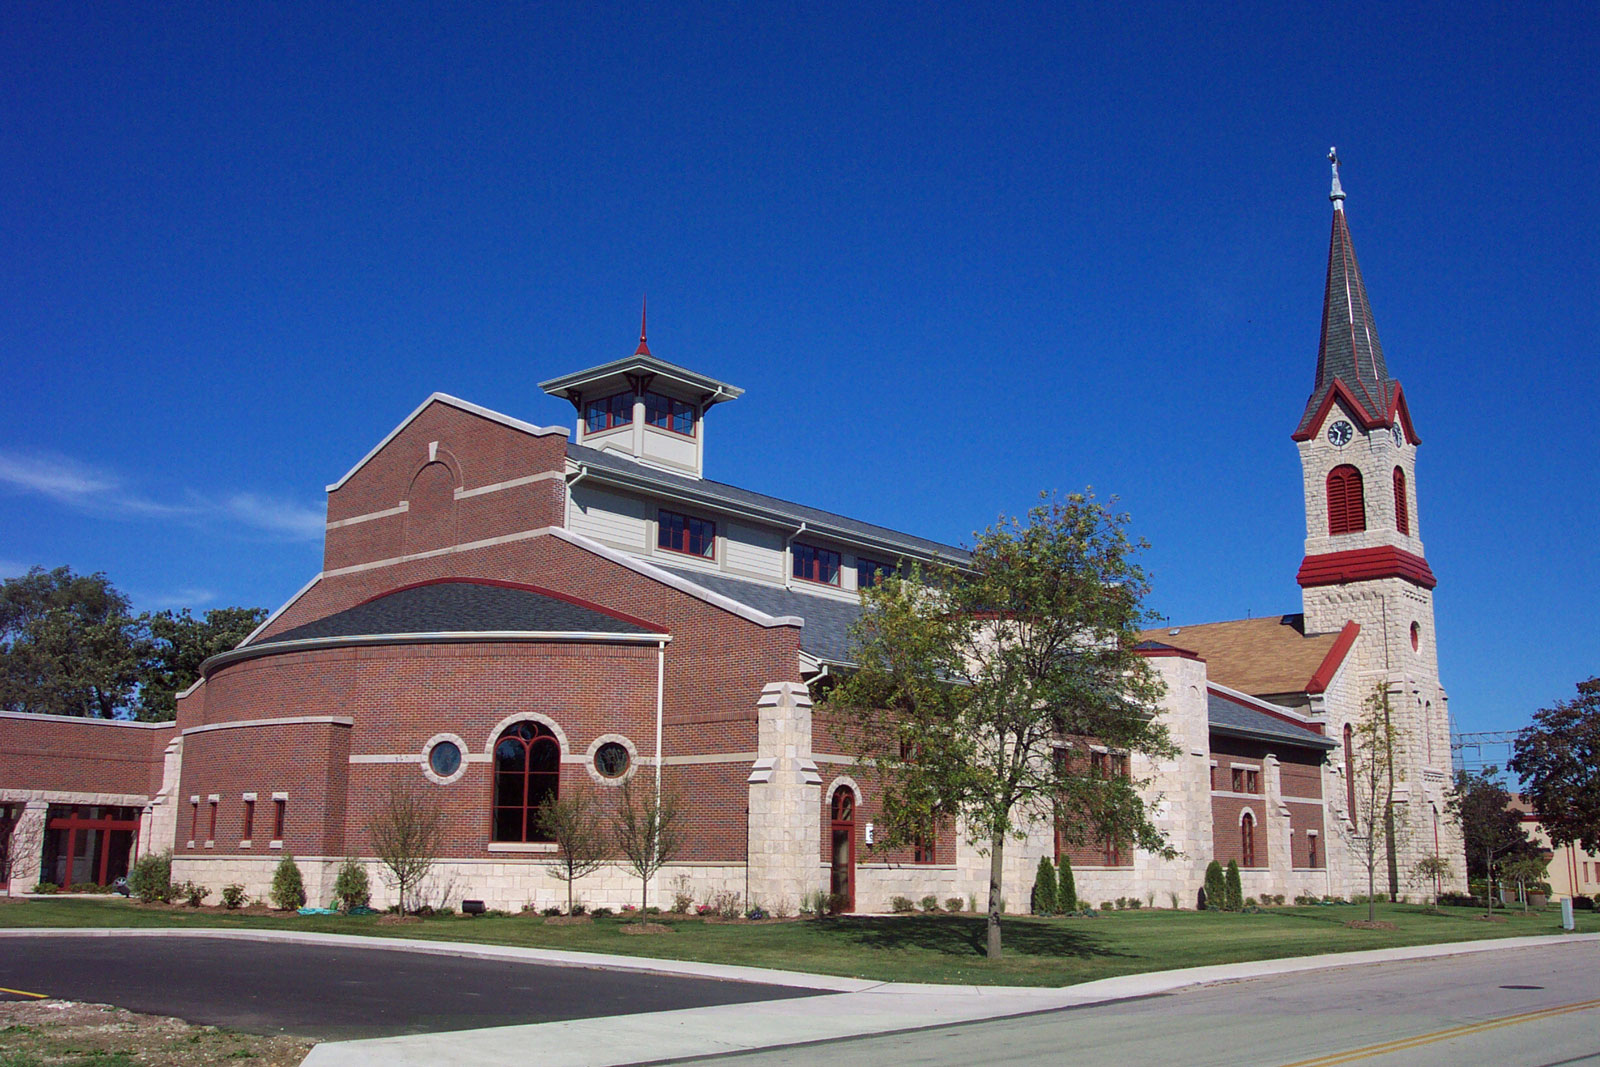 Red brick church with tan stone pillars running along side. One end has a large steeple, while he other holds the nave